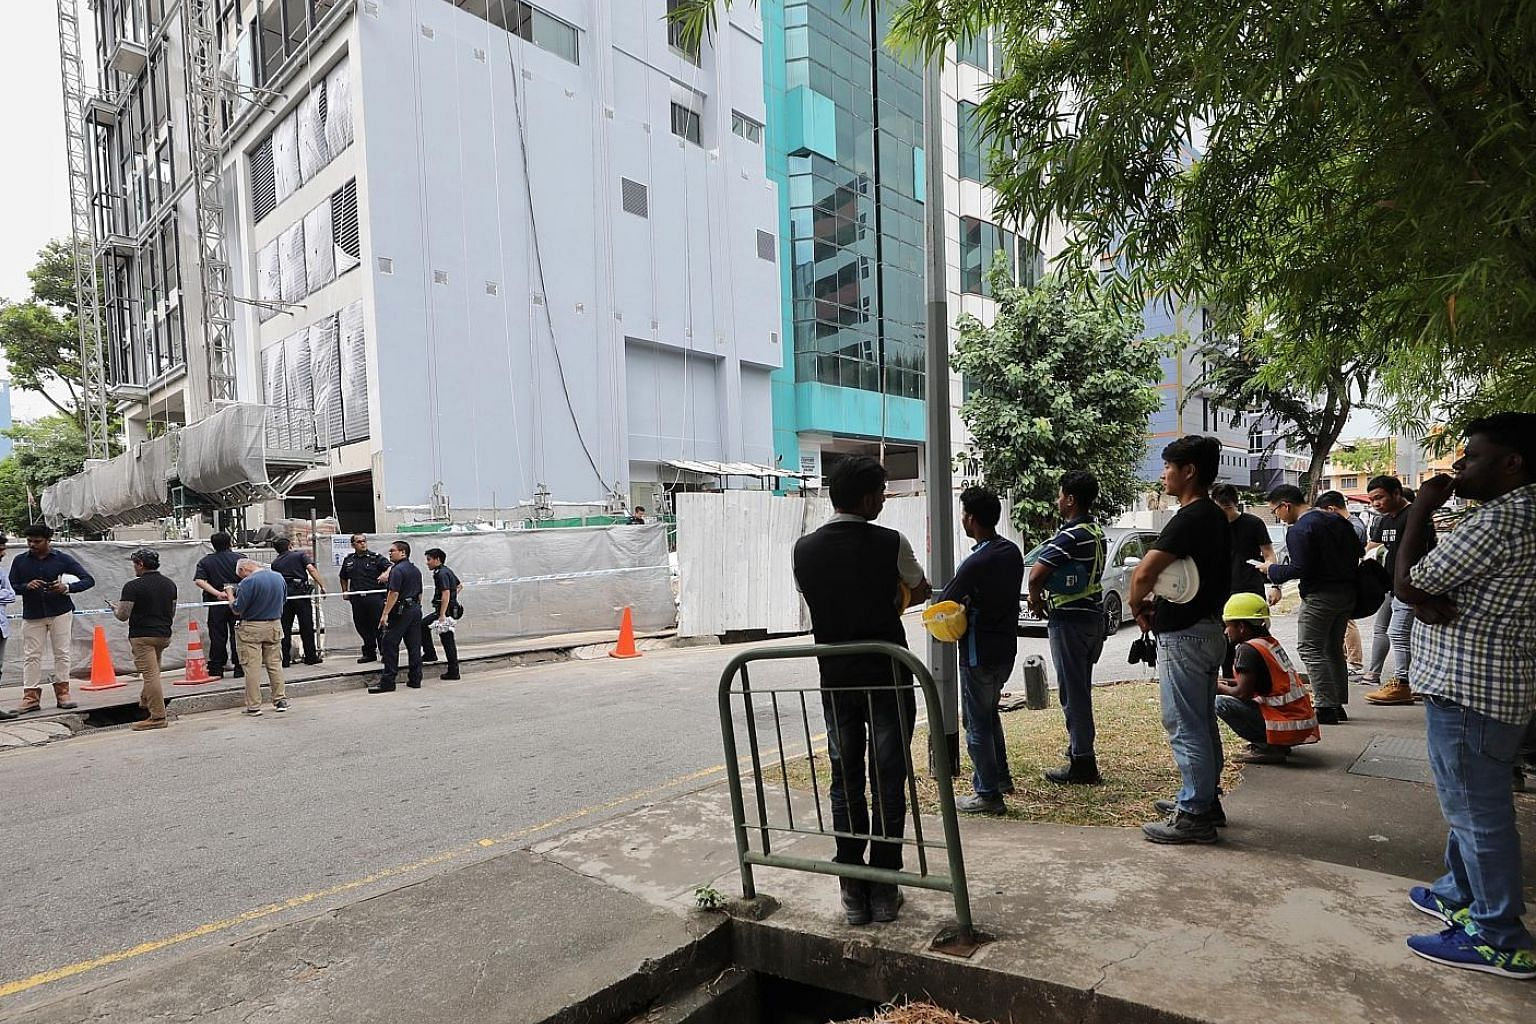 Above: The area where a suspected World War II bomb was found, on the grounds of a half-constructed building in Geylang Lorong 23, was cordoned off after its discovery yesterday. The safety officer of the construction site confirmed that the object w